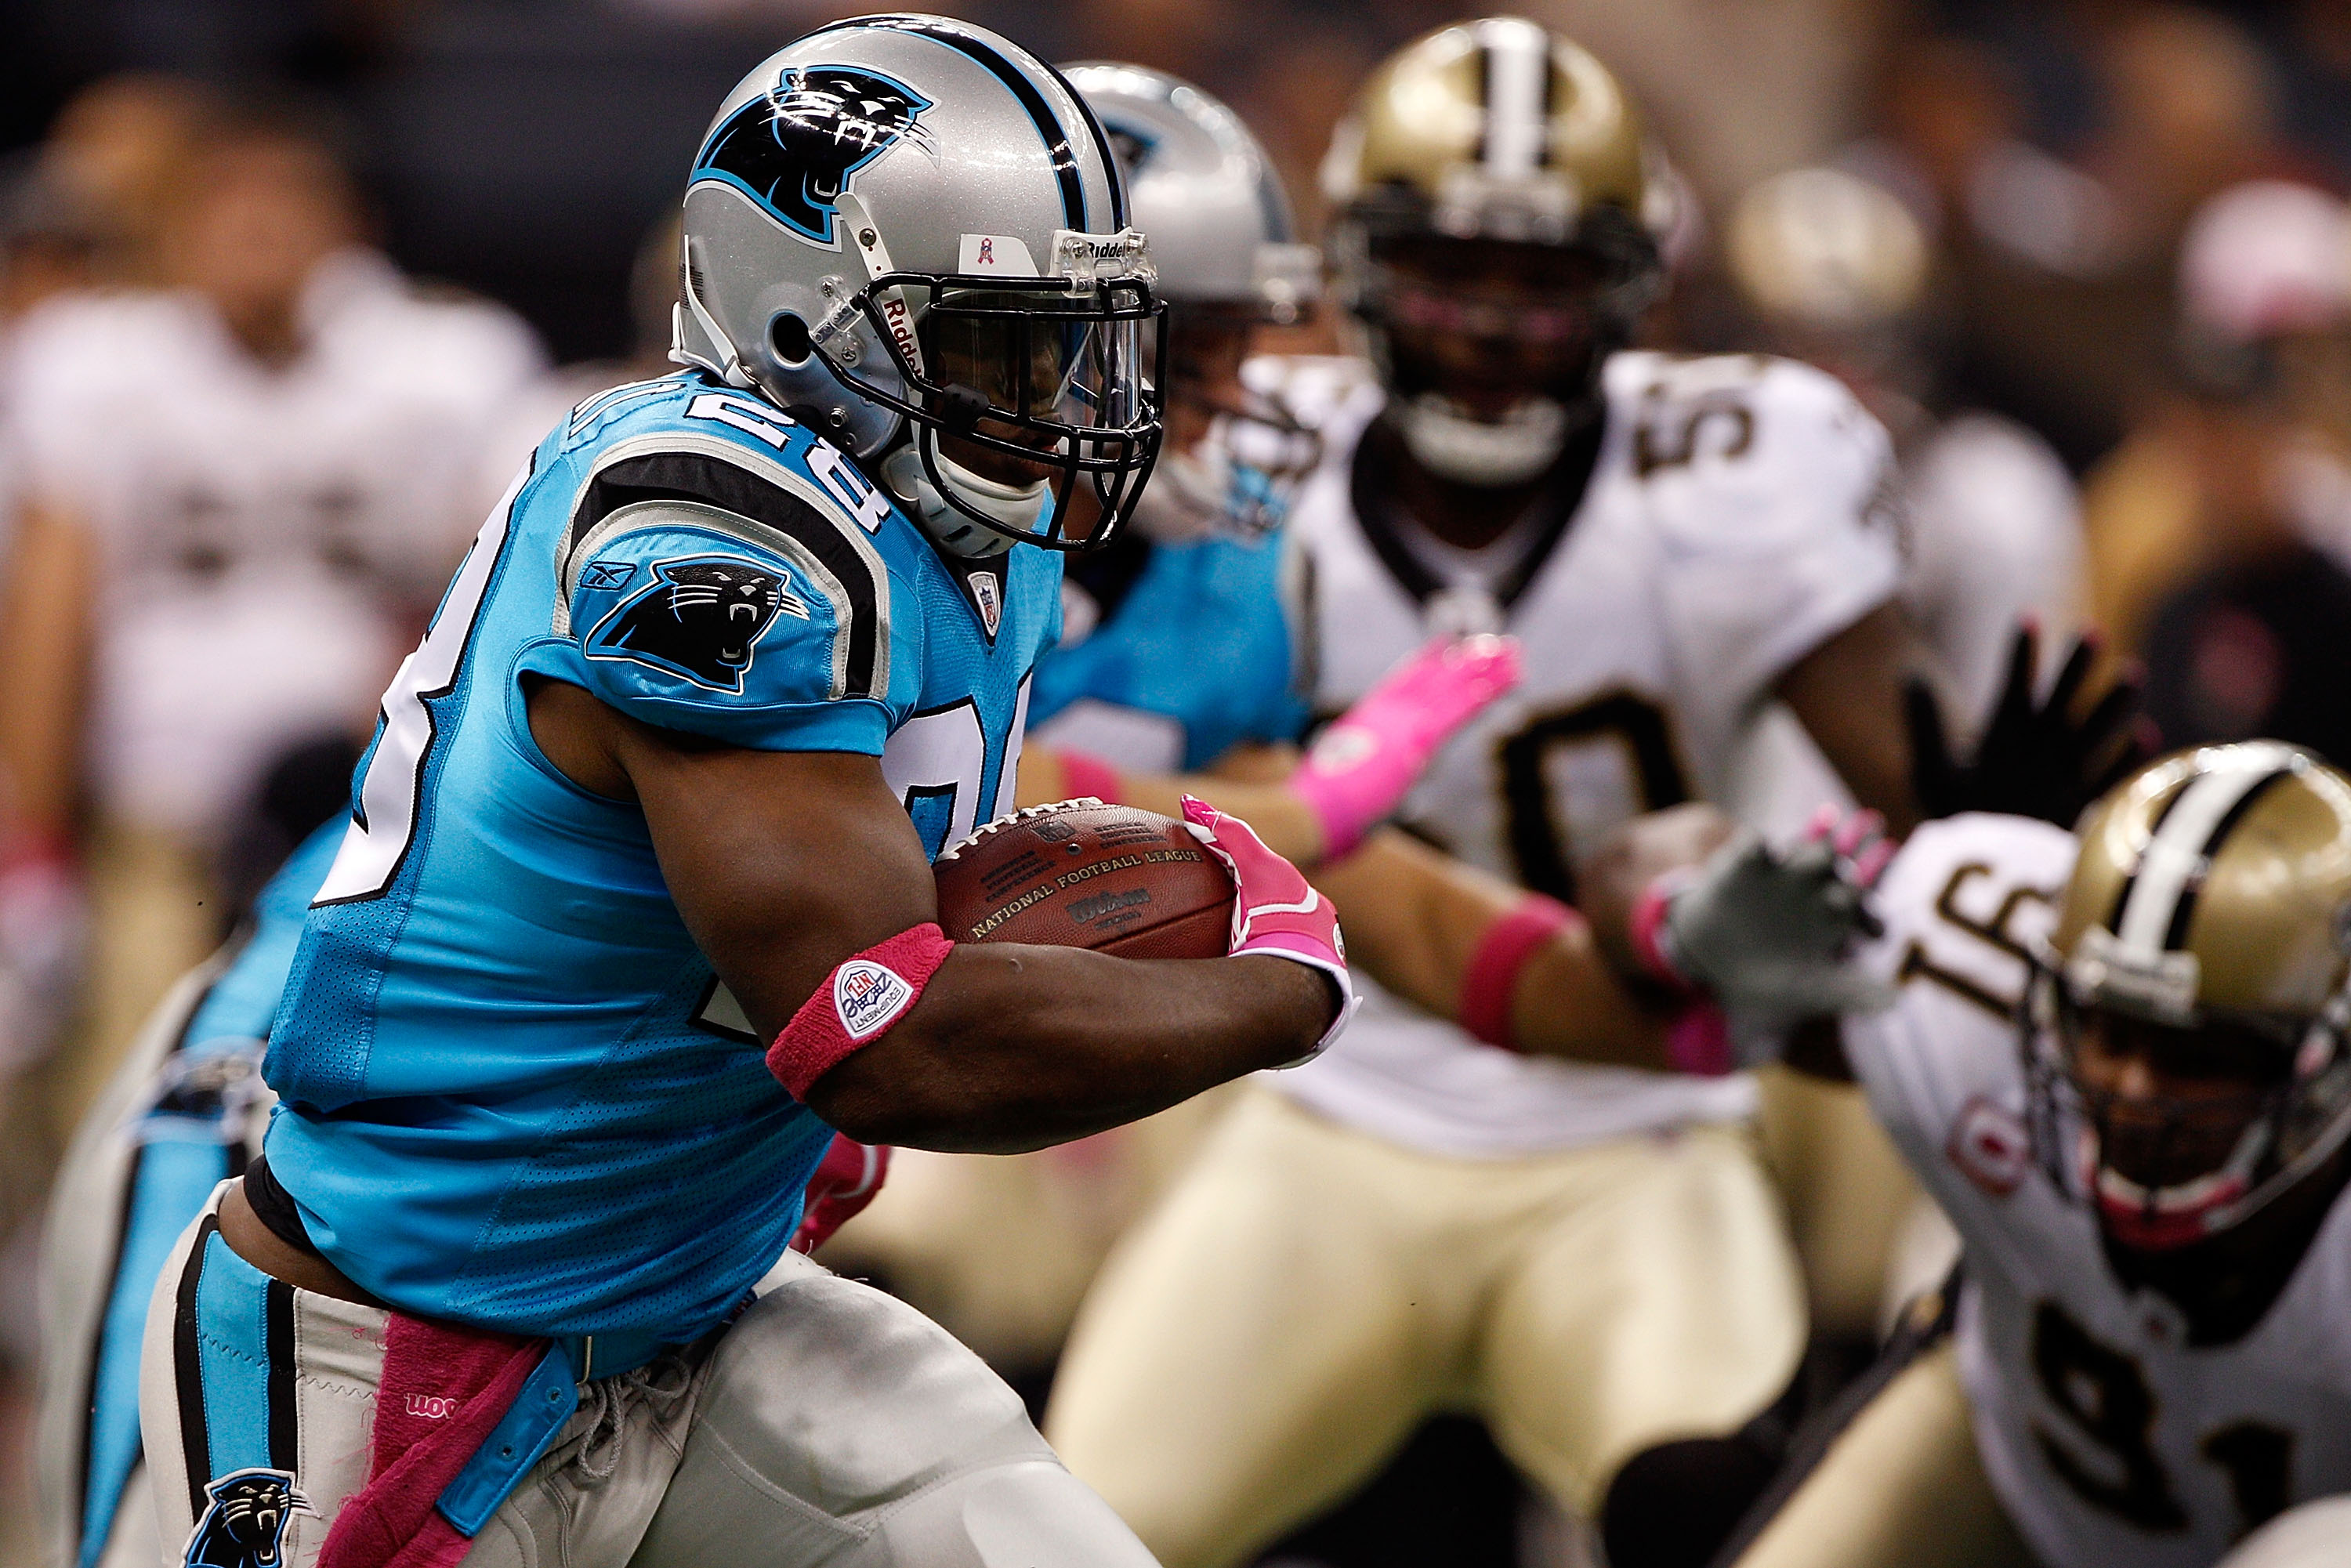 NEW ORLEANS - OCTOBER 03:  Jonathan Stewart #28 of the Carolina Panthers in action during the game against the New Orleans Saints at the Louisiana Superdome on October 3, 2010 in New Orleans, Louisiana.  (Photo by Chris Graythen/Getty Images)